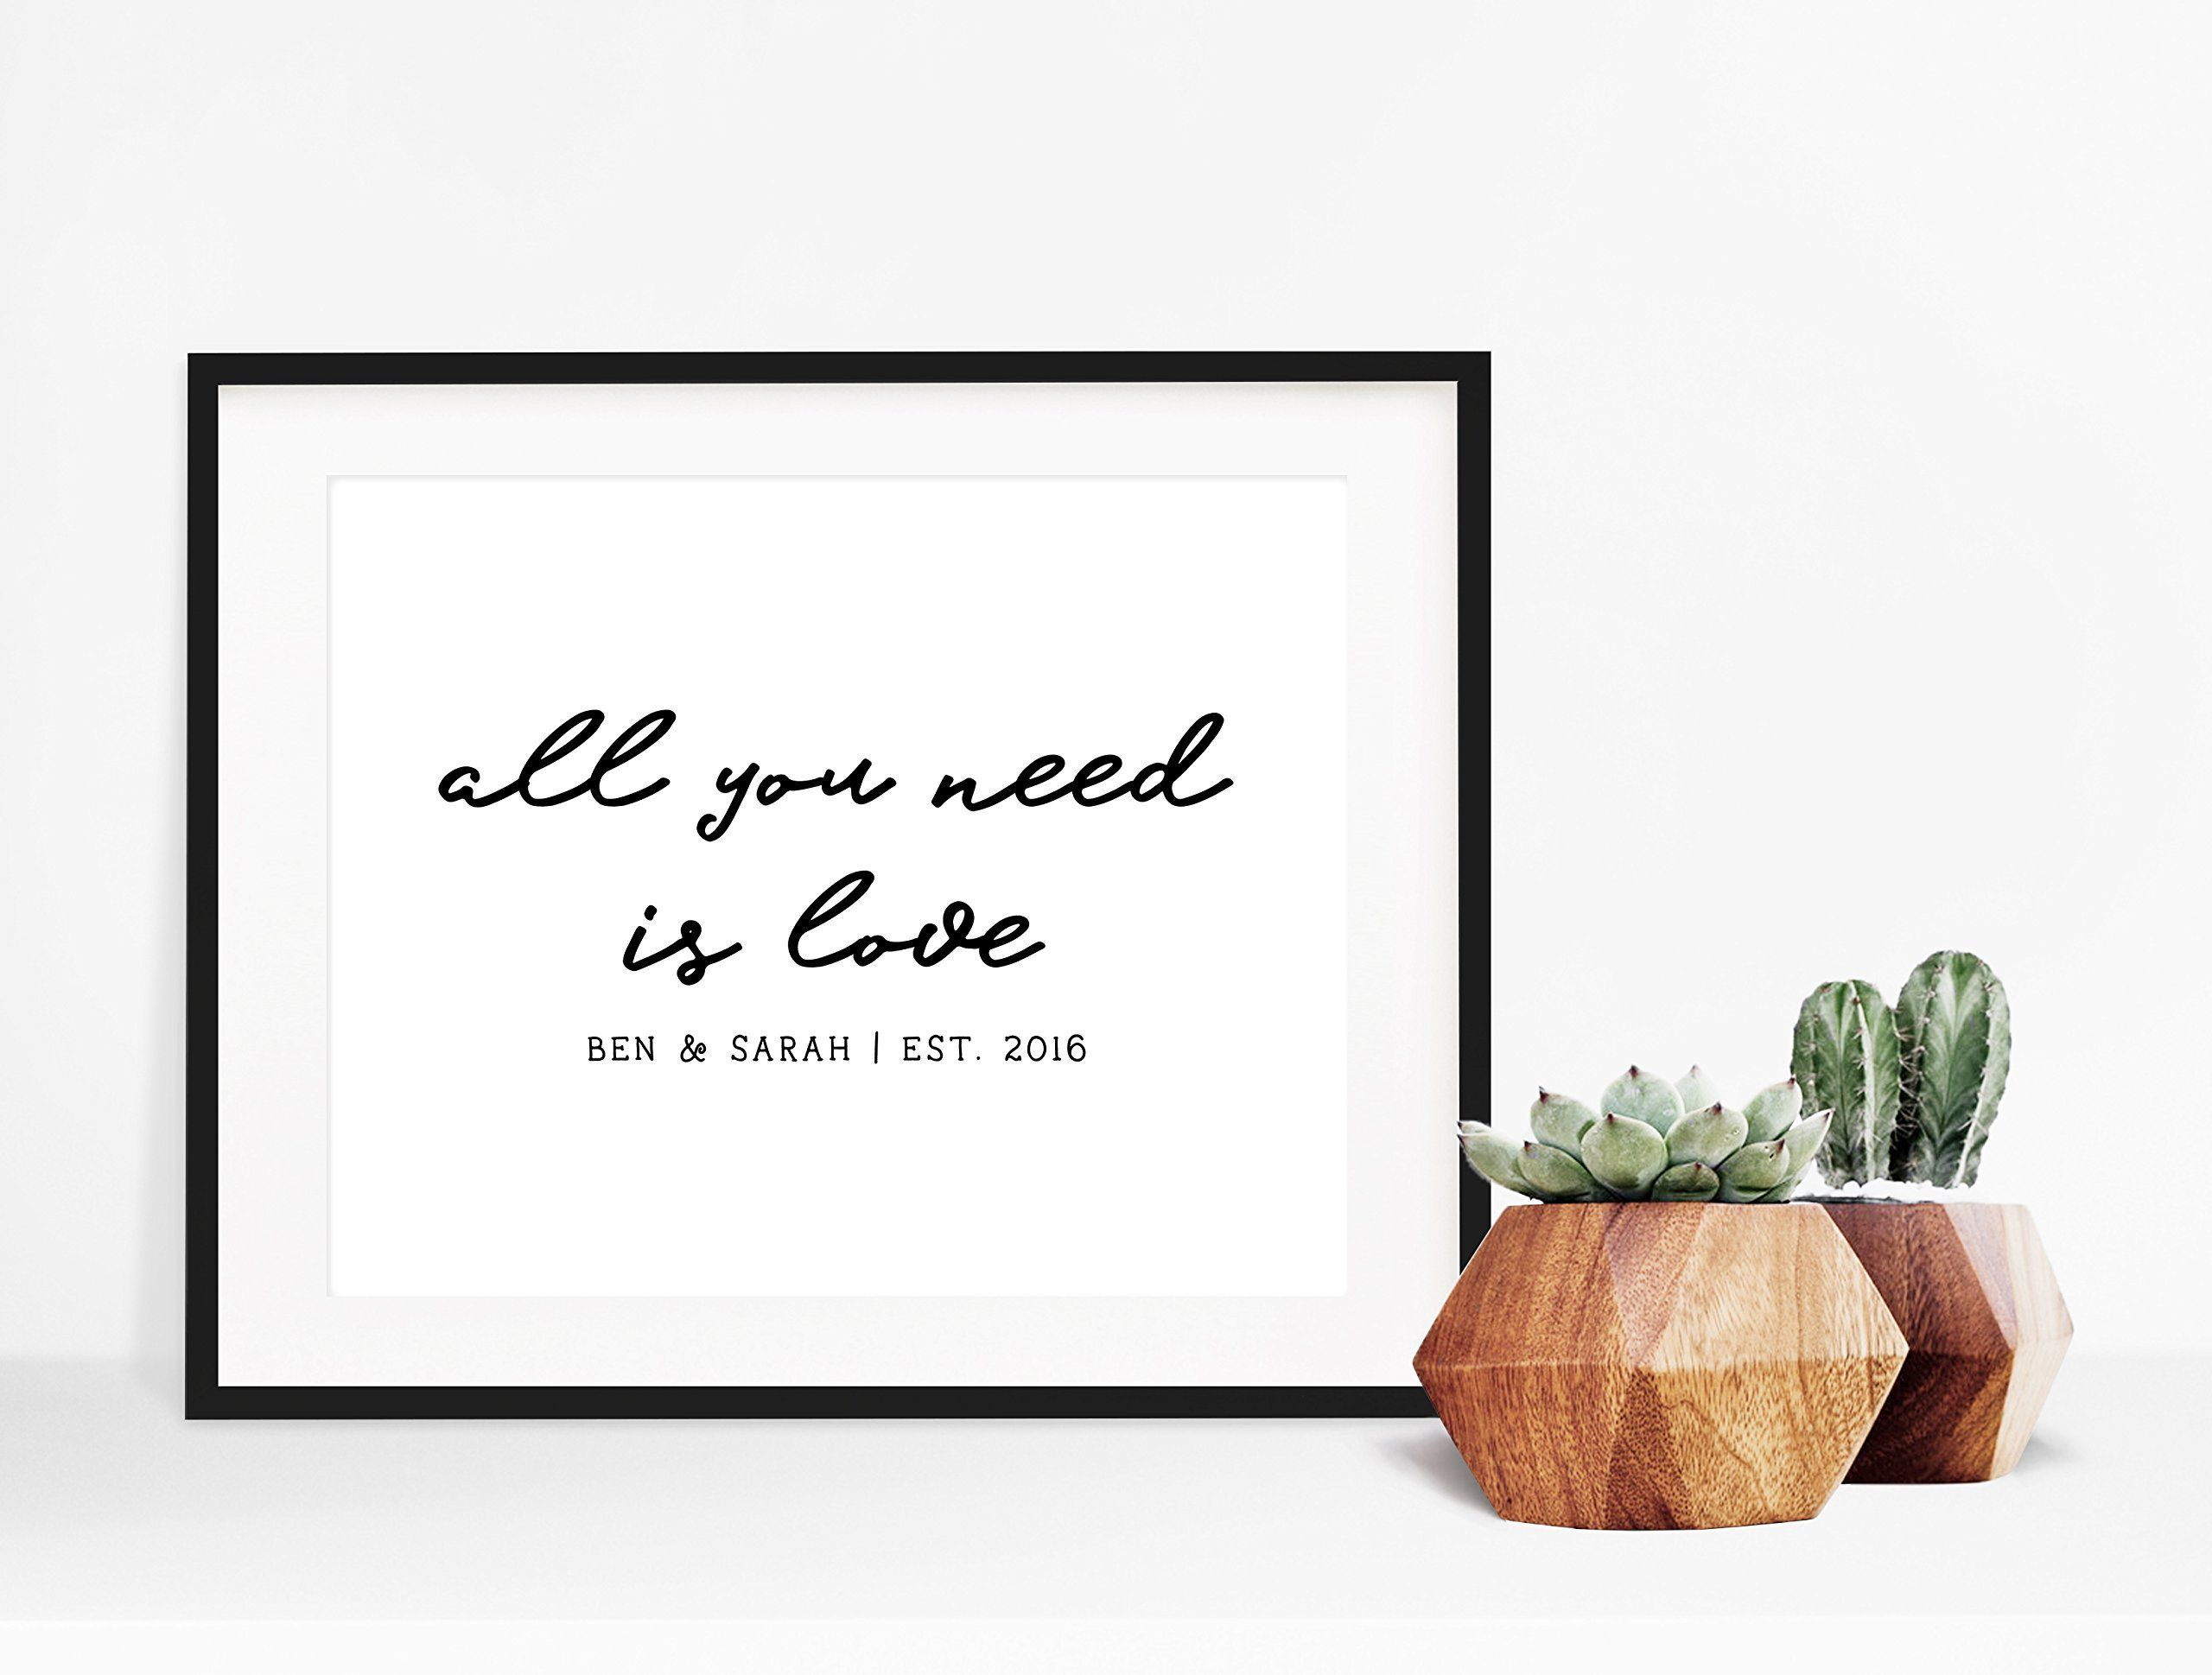 Wedding Song Lyrics All You Need Is Love The Beatles This Lyric Poster